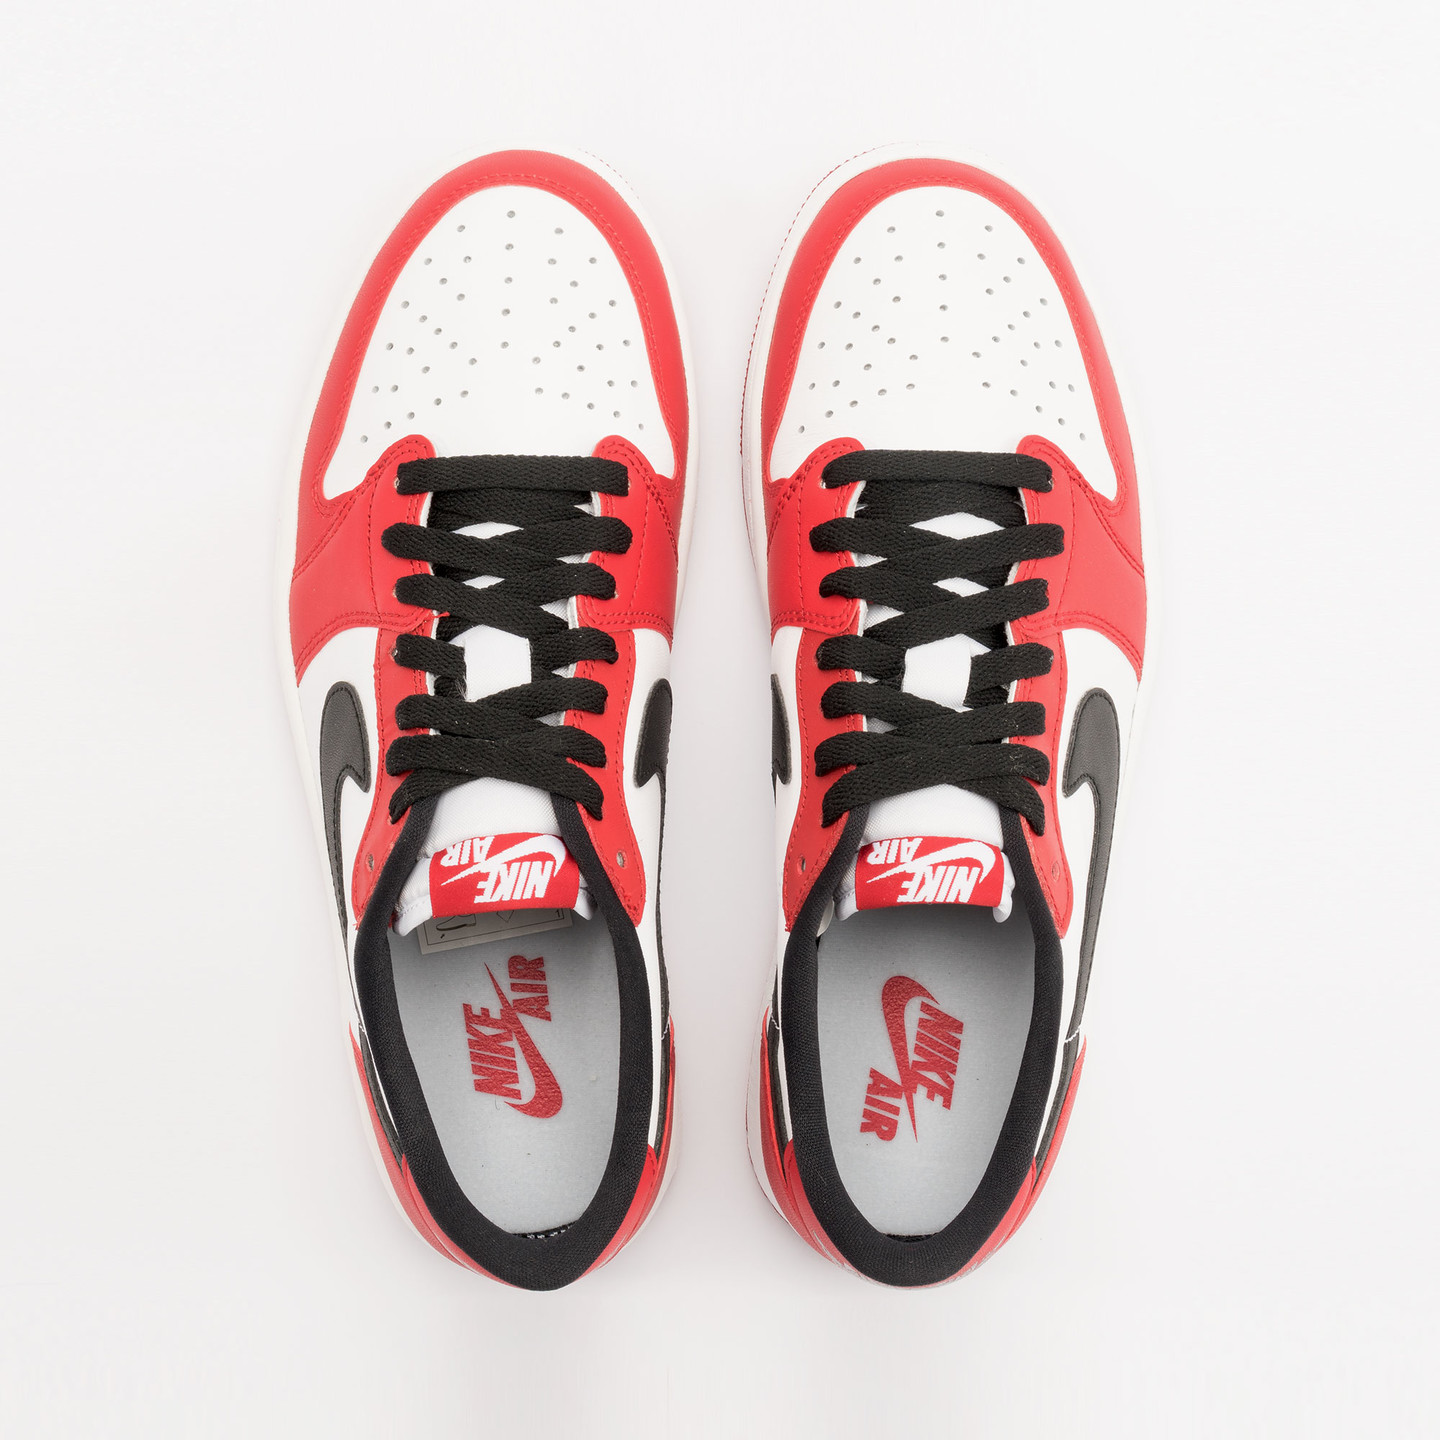 Nike Air Jordan 1 Retro Low OG 'Chicago' Varsity Red / Black / White 705329-600-43